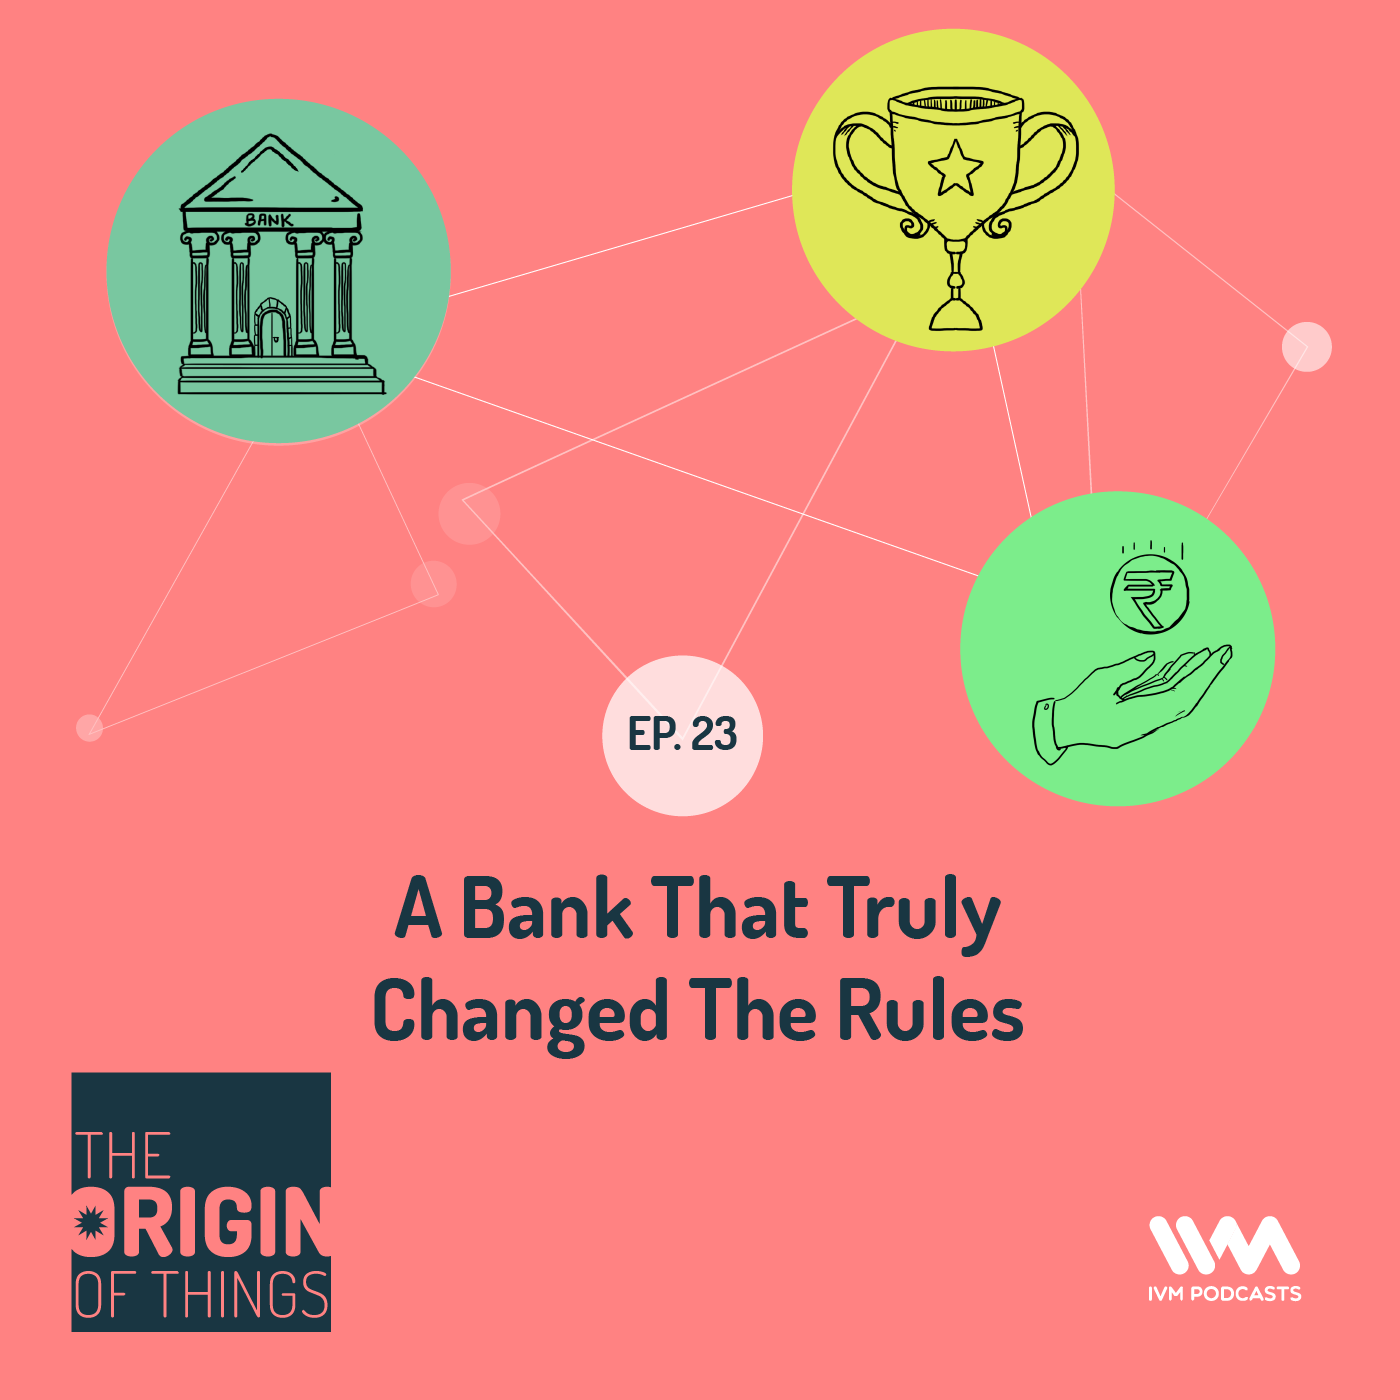 Ep. 23: A Bank That Truly Changed The Rules